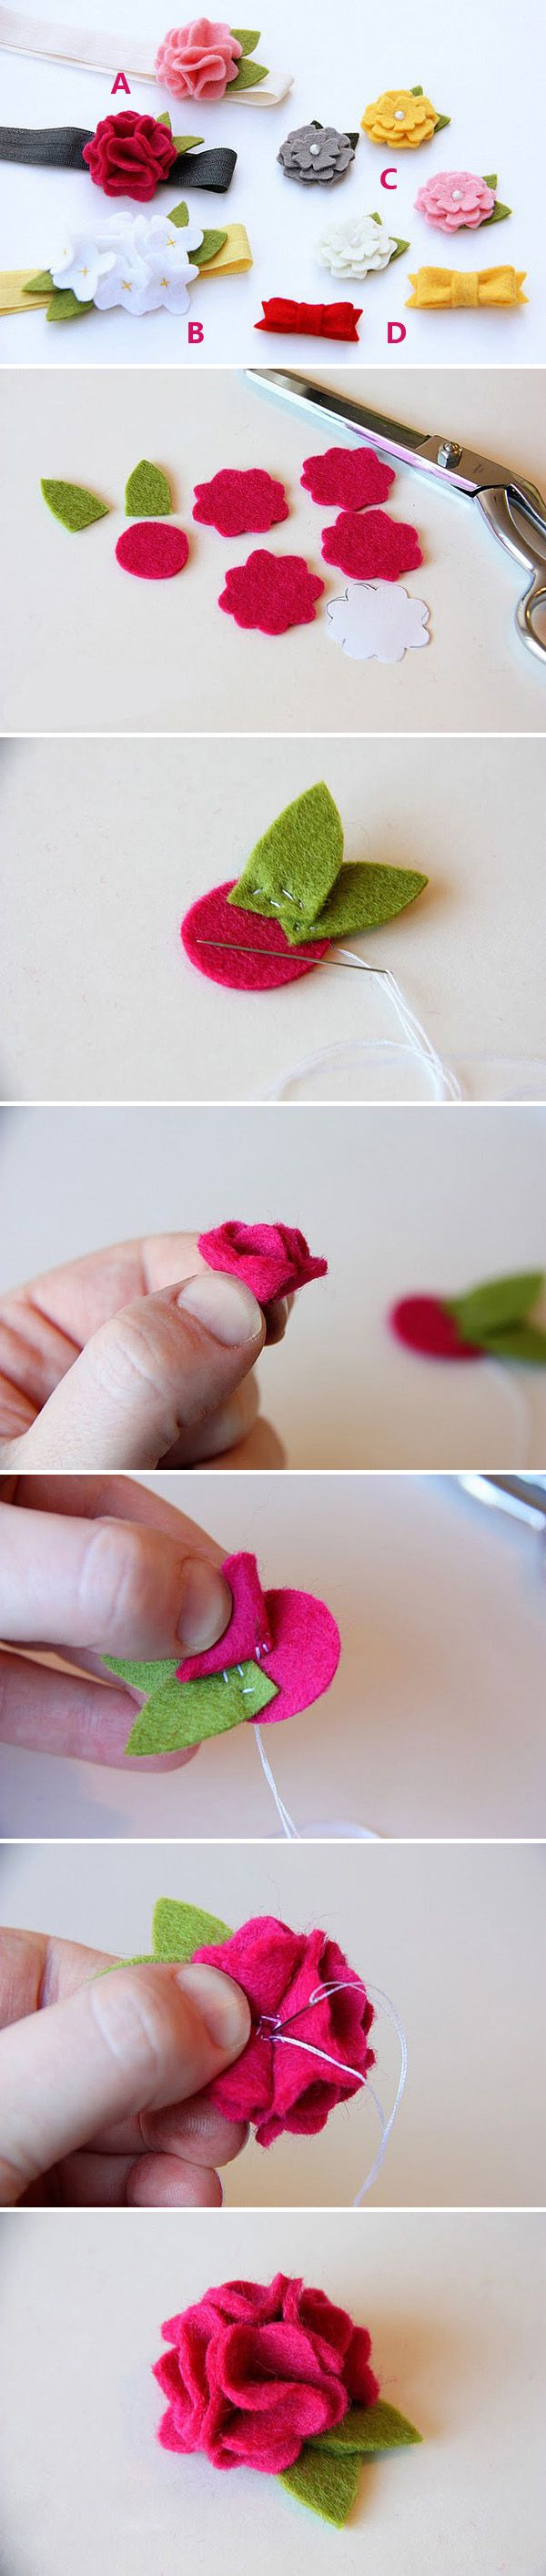 Felt flower tutorial --- no directions. Just photos. Looks easy enough.